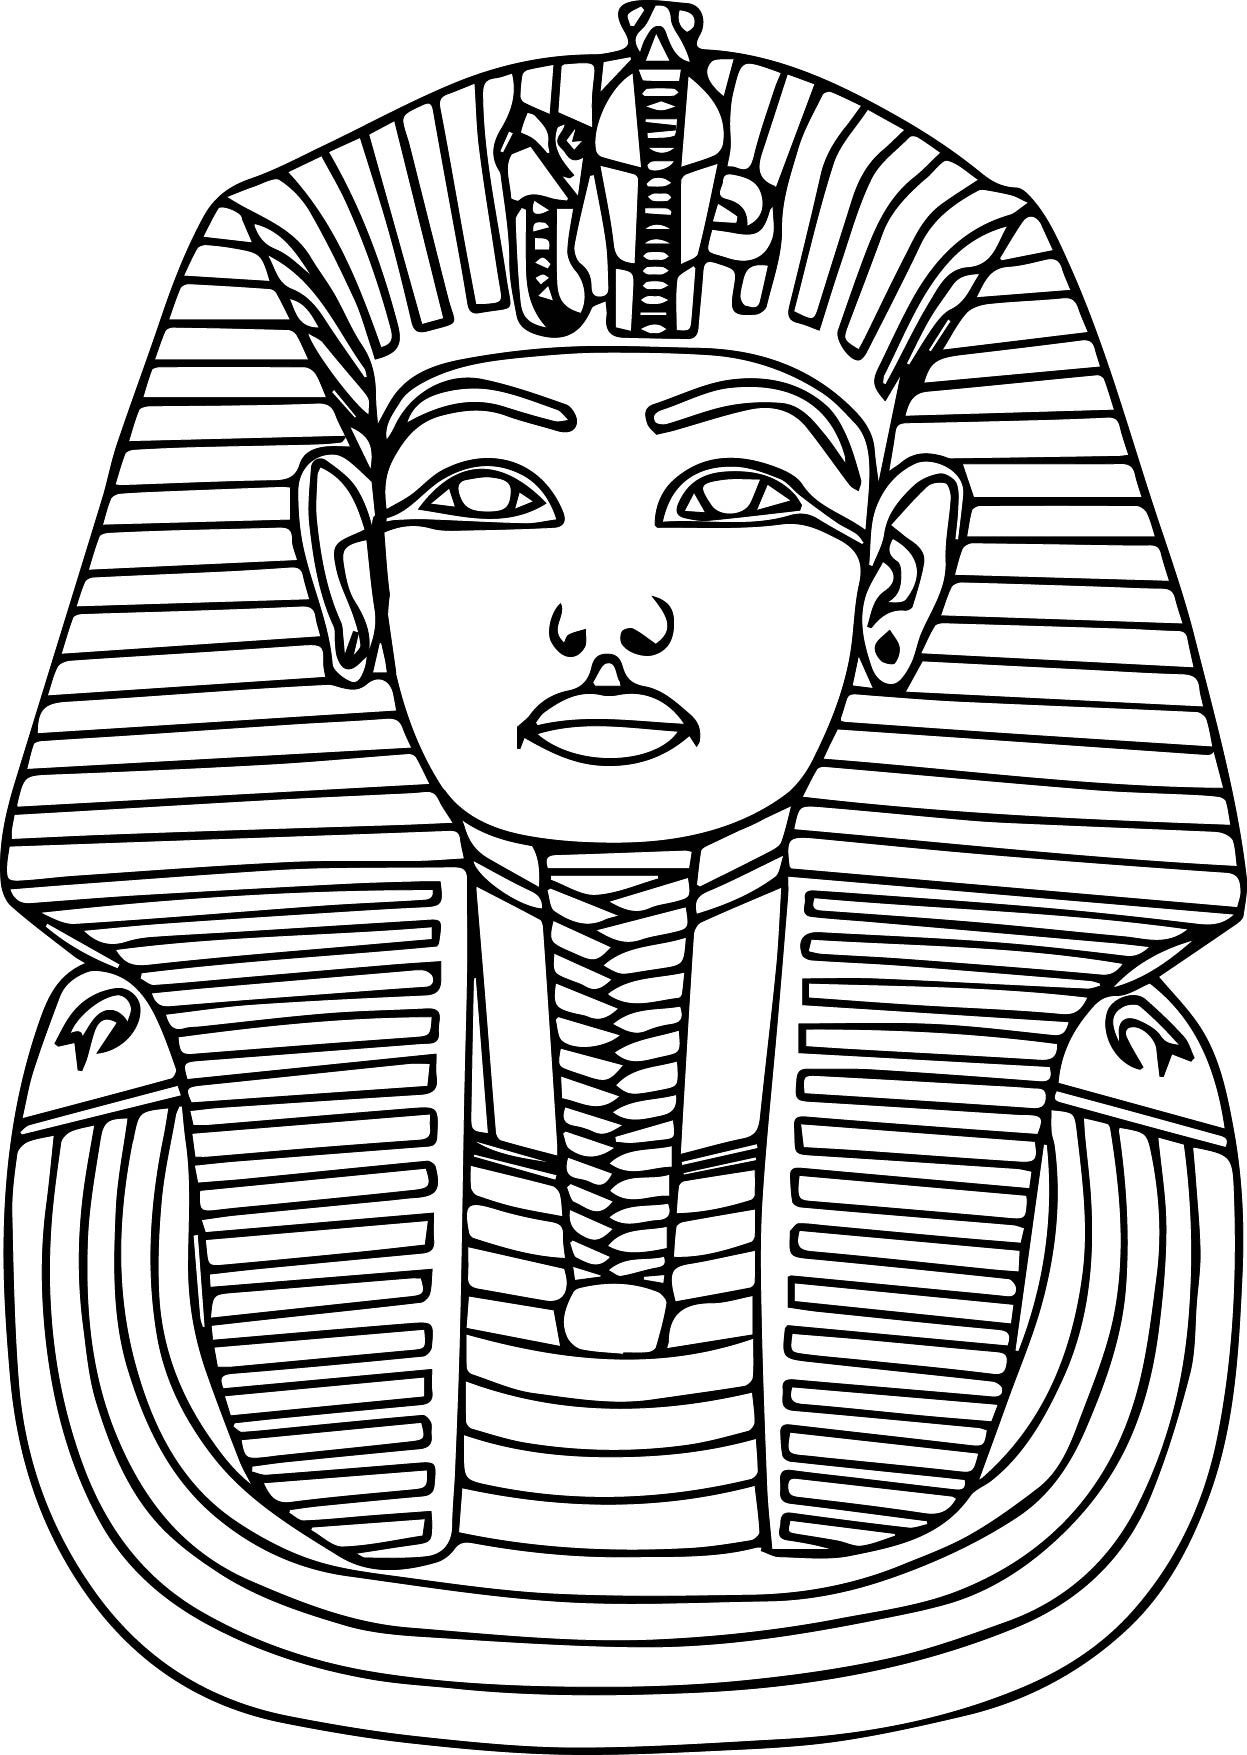 Printable Ancient Egypt Pharaoh Coloring Pages | Education | Egypt - Free Printable Sarcophagus